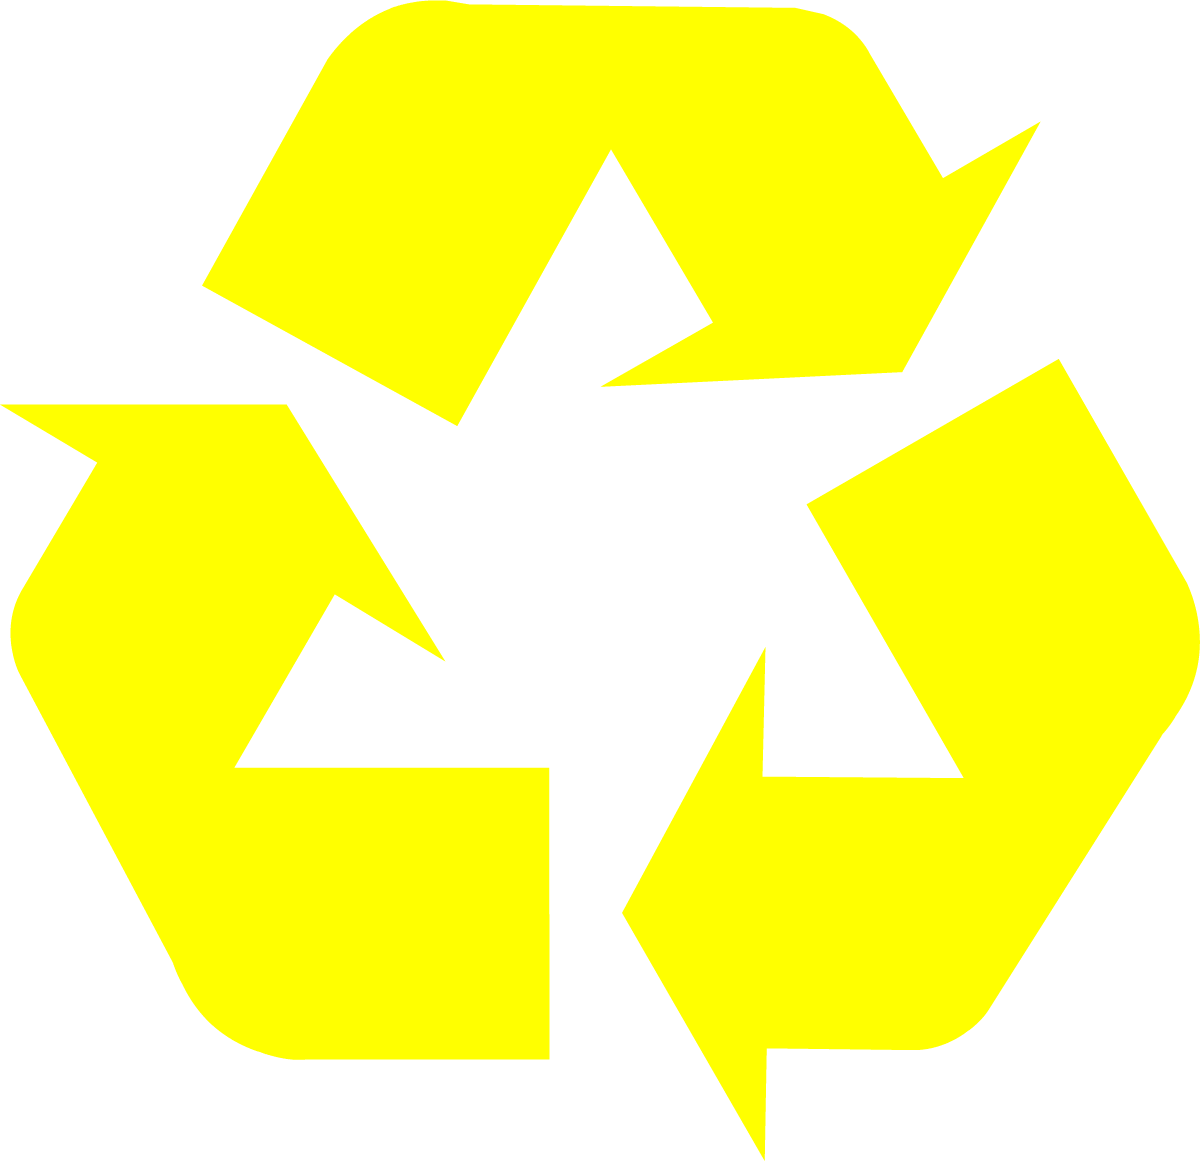 Download Recycling Symbol The Original Recycle Logo Recycle Symbol Recycle Sign Symbols